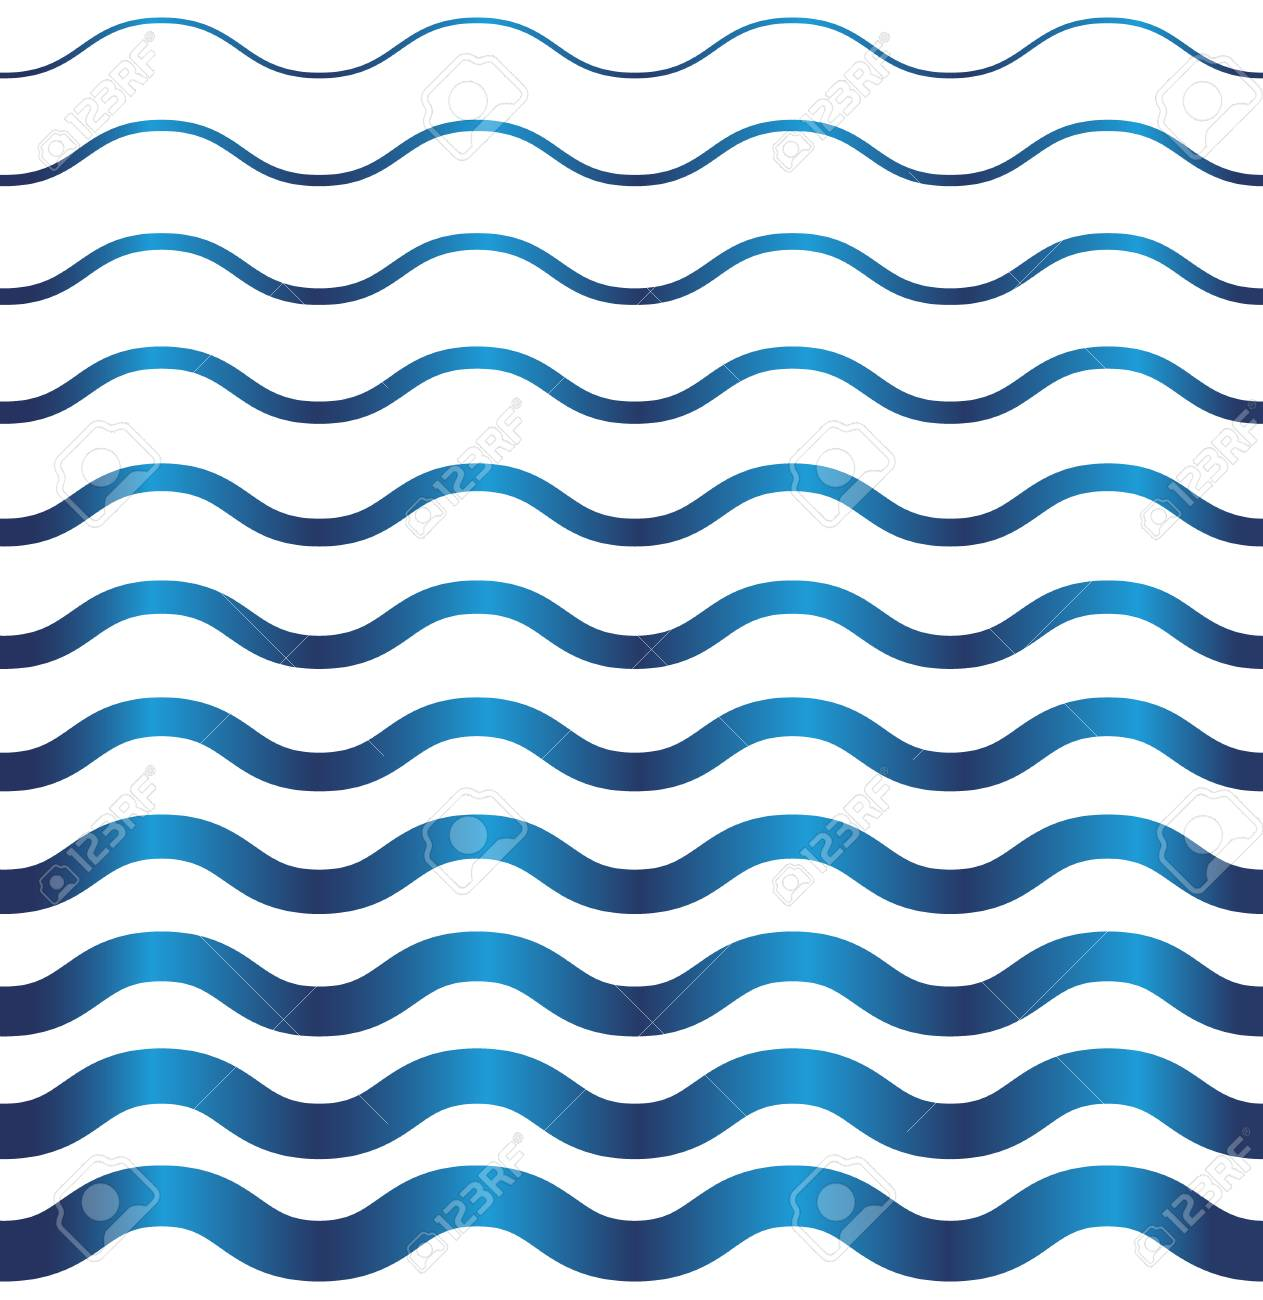 Seamless Pattern On White Background Blue Light And Dark Wave